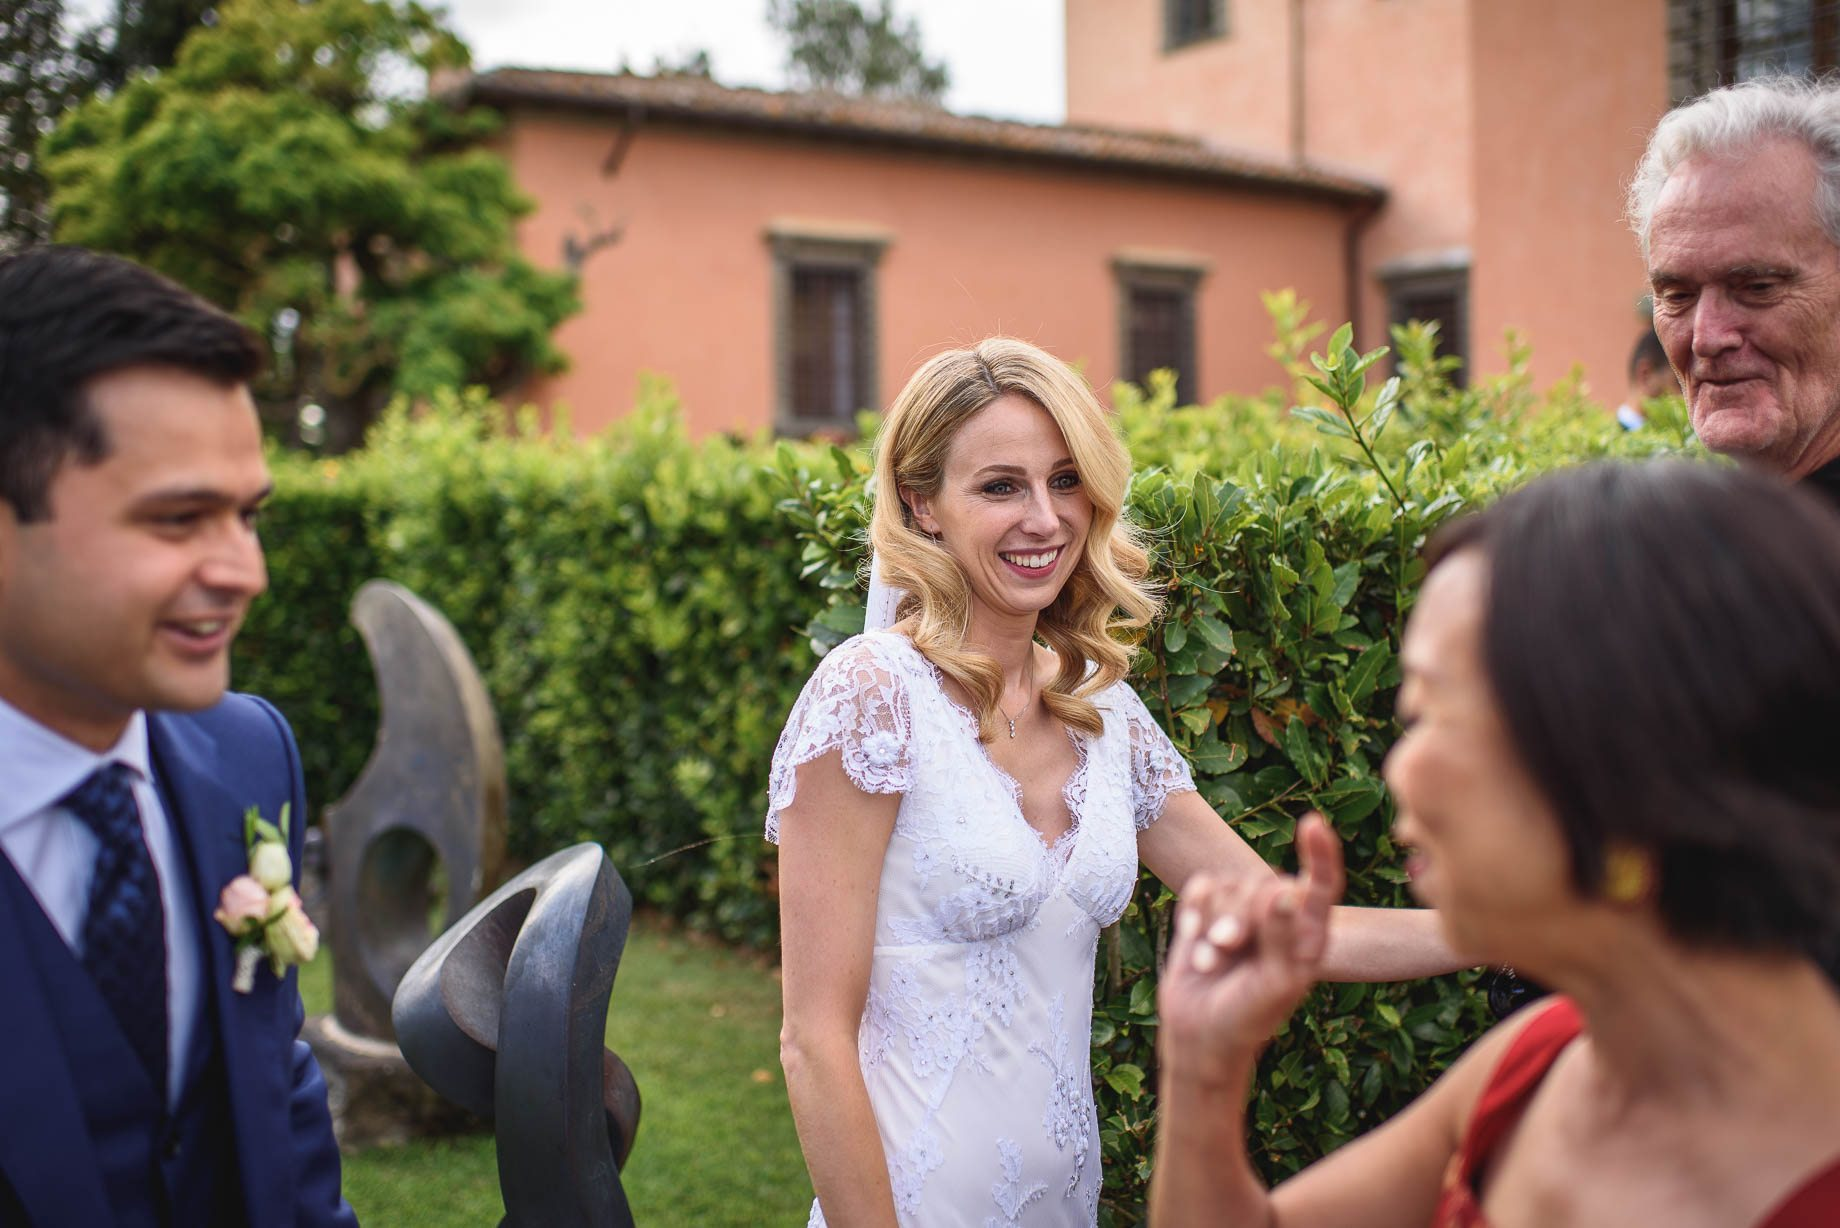 Tuscany wedding photography - Roisin and Moubin - Guy Collier Photography (124 of 251)